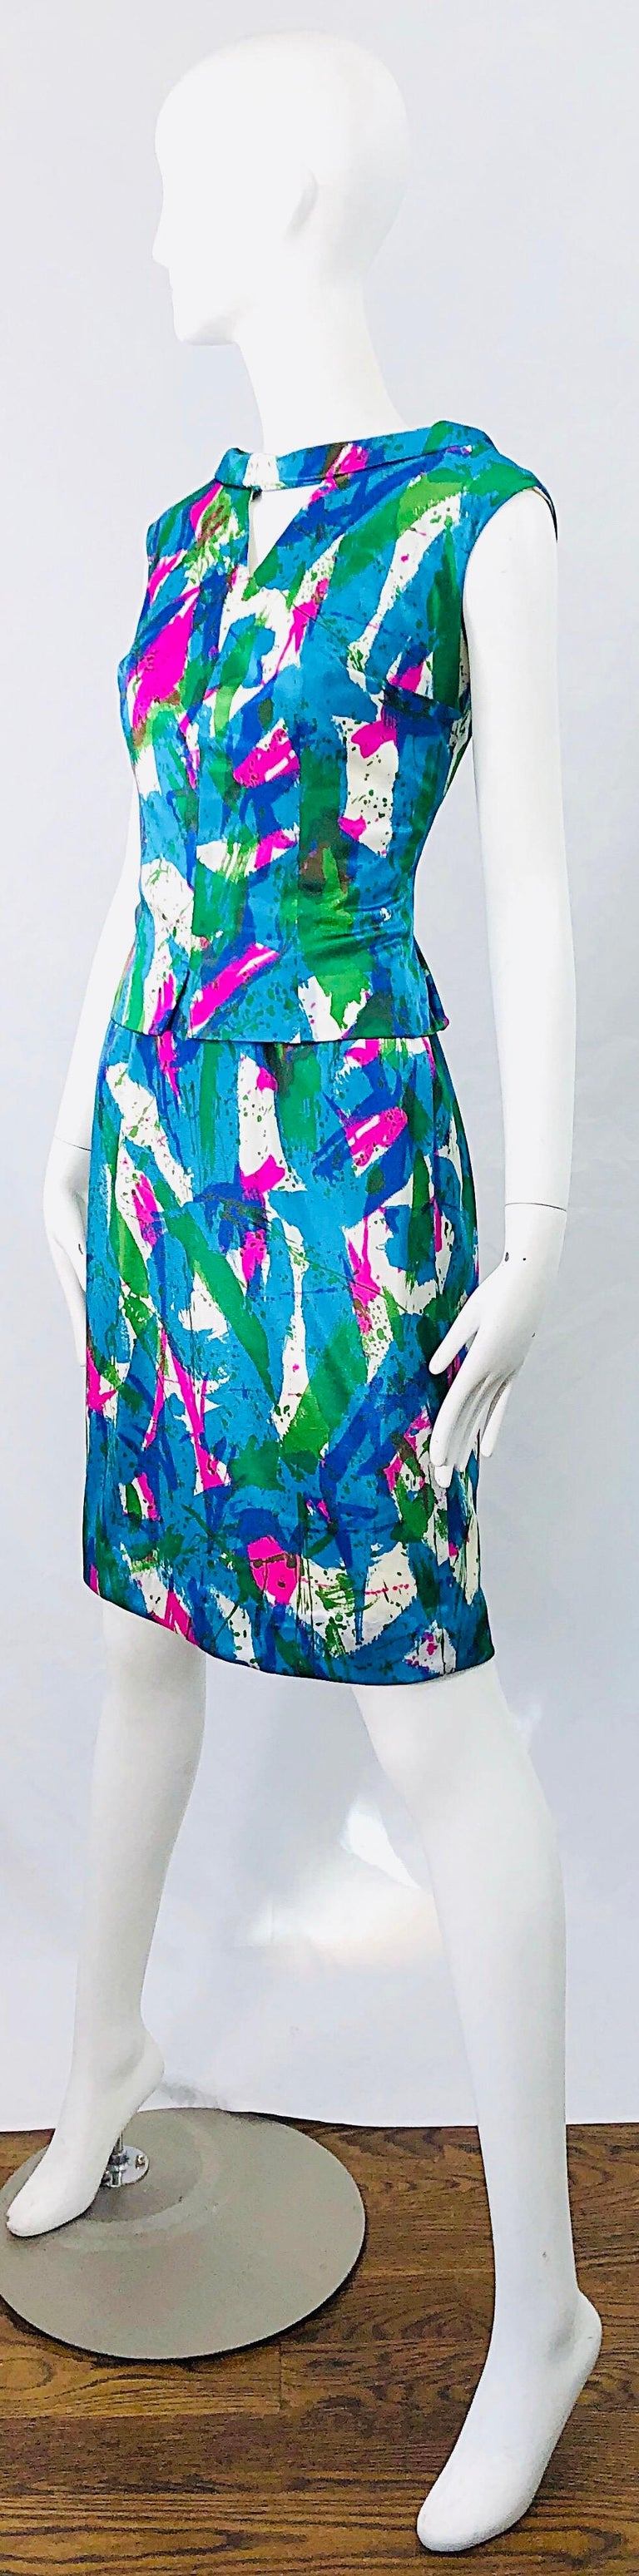 Chic 1960s Neon Abstract Print Two Piece Vintage 60s Sheath Dress + Top Blouse  For Sale 1